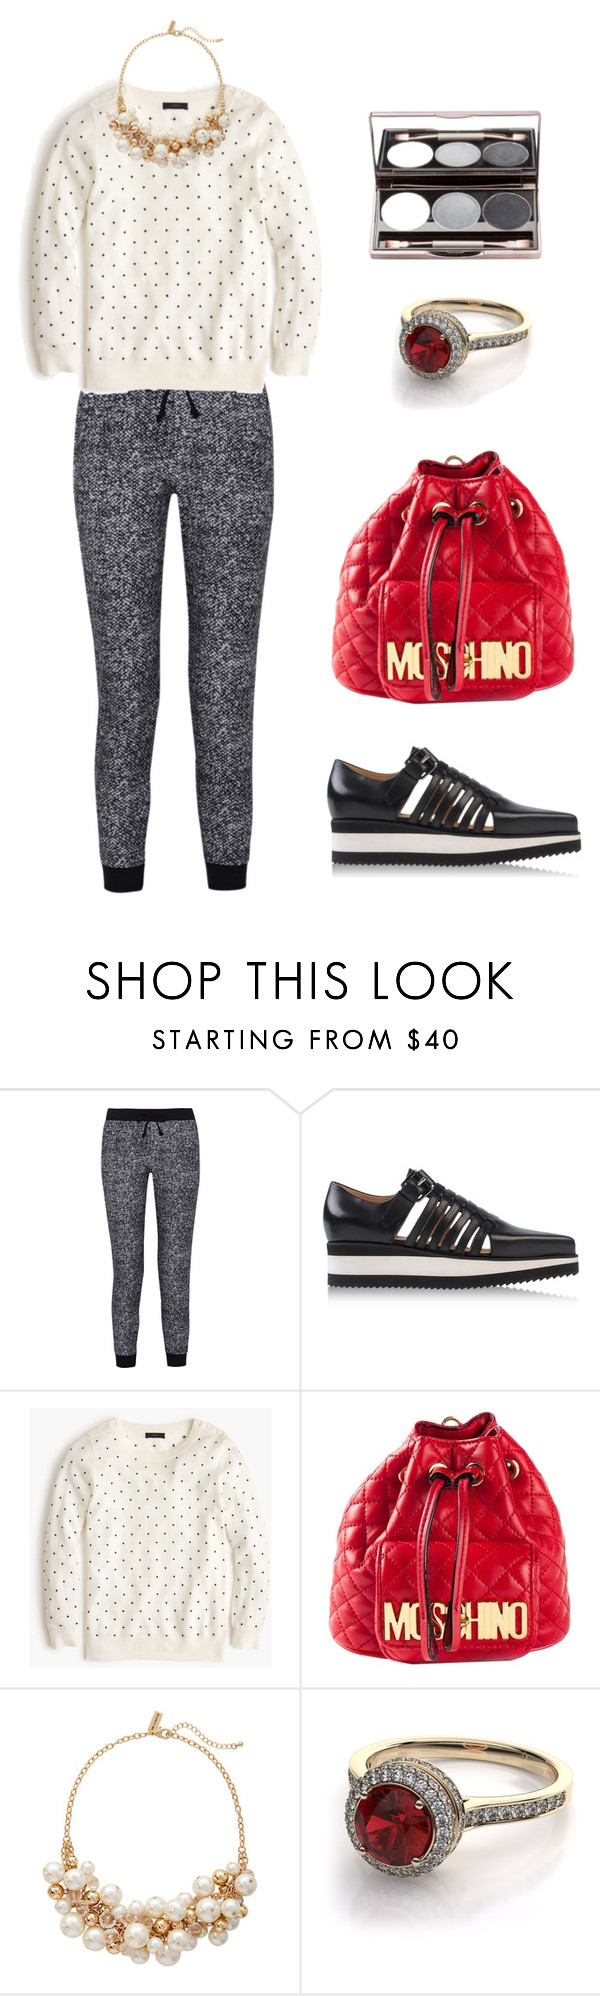 """""""Sin título #420"""" by crystalhaze08 ❤ liked on Polyvore featuring Splendid, Barbara Bui, J.Crew, Moschino and The Limited"""